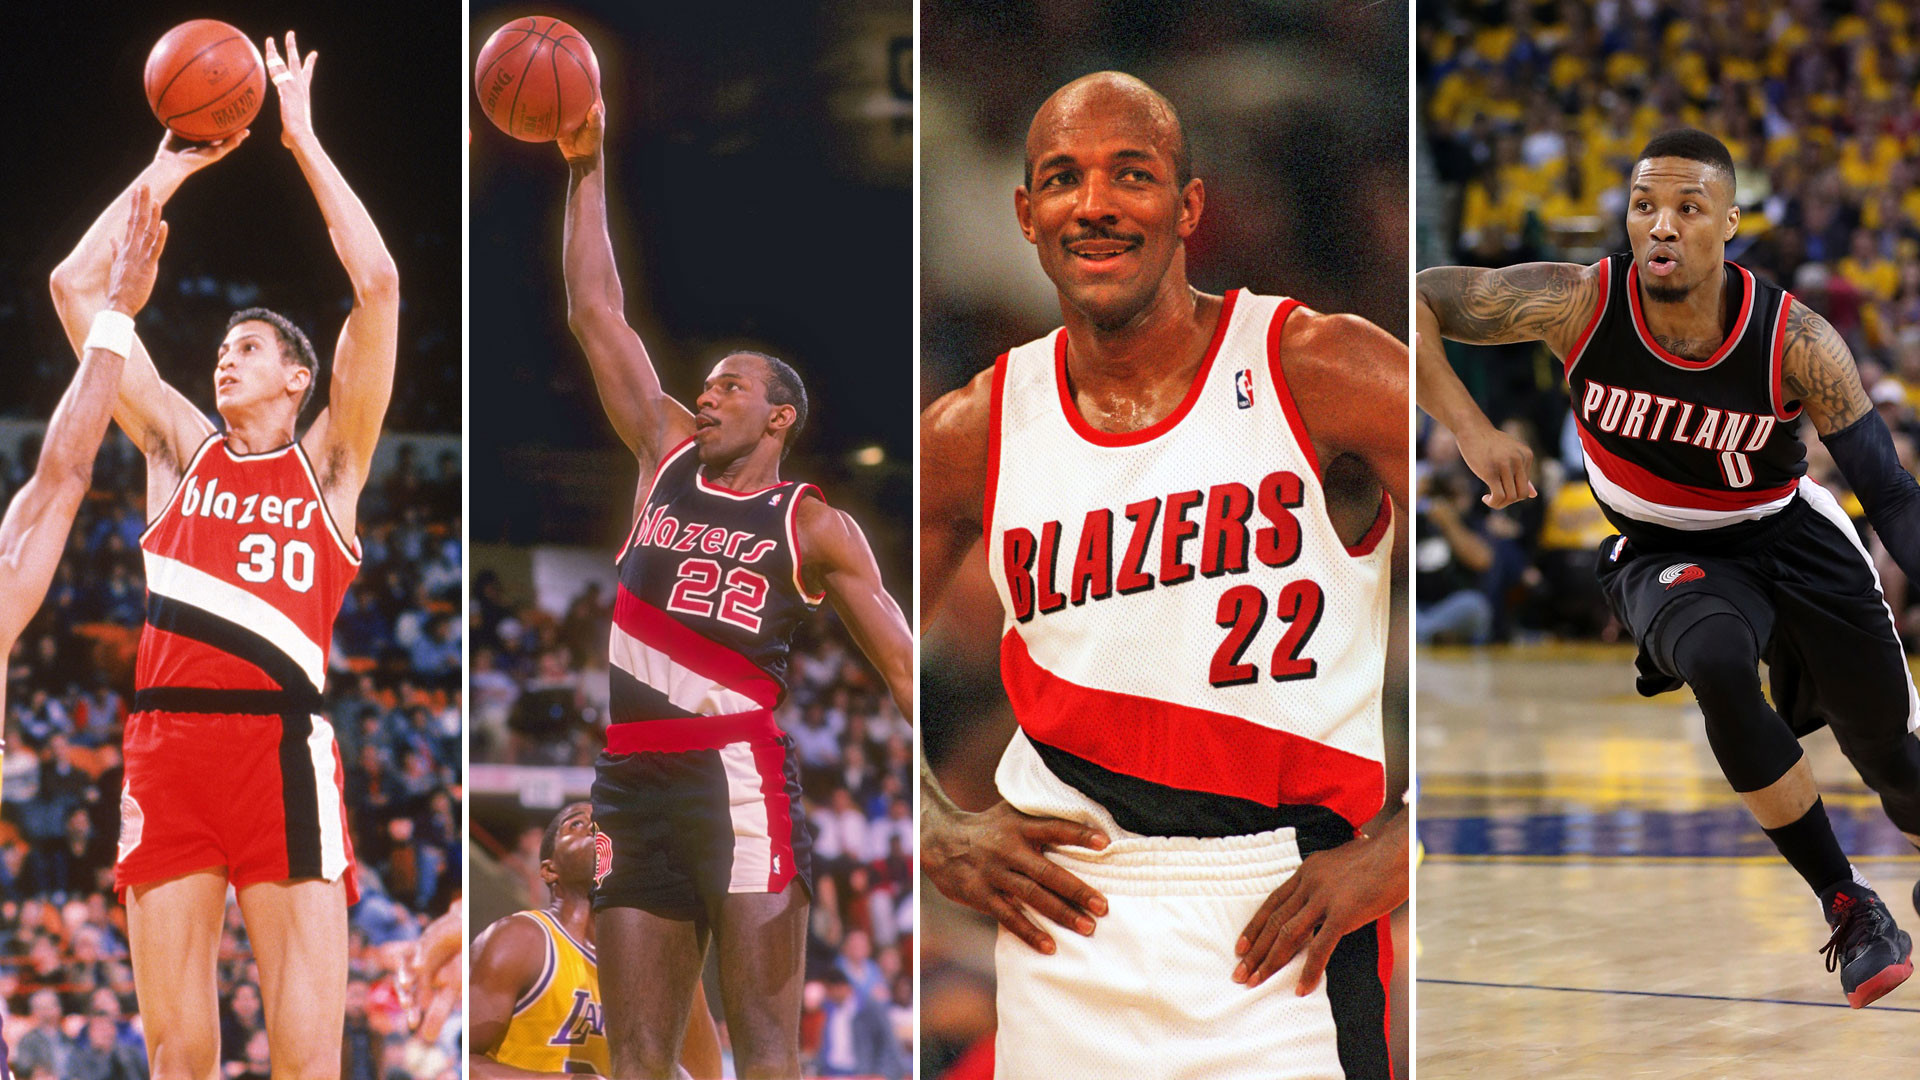 Portland Trail Blazers will get new uniforms and a new logo in 2017 | NBA |  Sporting News